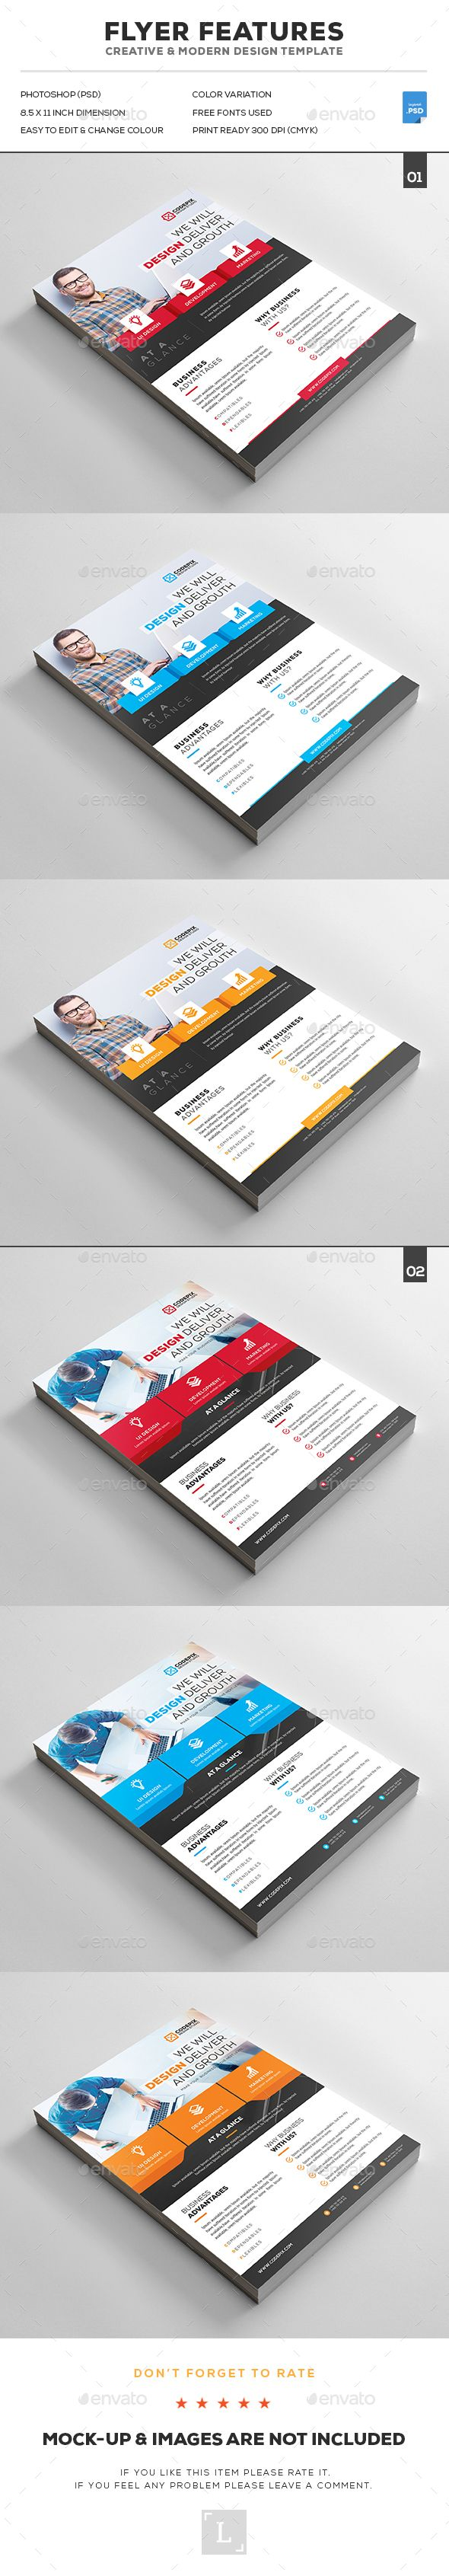 Corporate Flyer Bundle Templates PSD. Download here: http://graphicriver.net/item/corporate-flyer-bundle/16690252?ref=ksioks